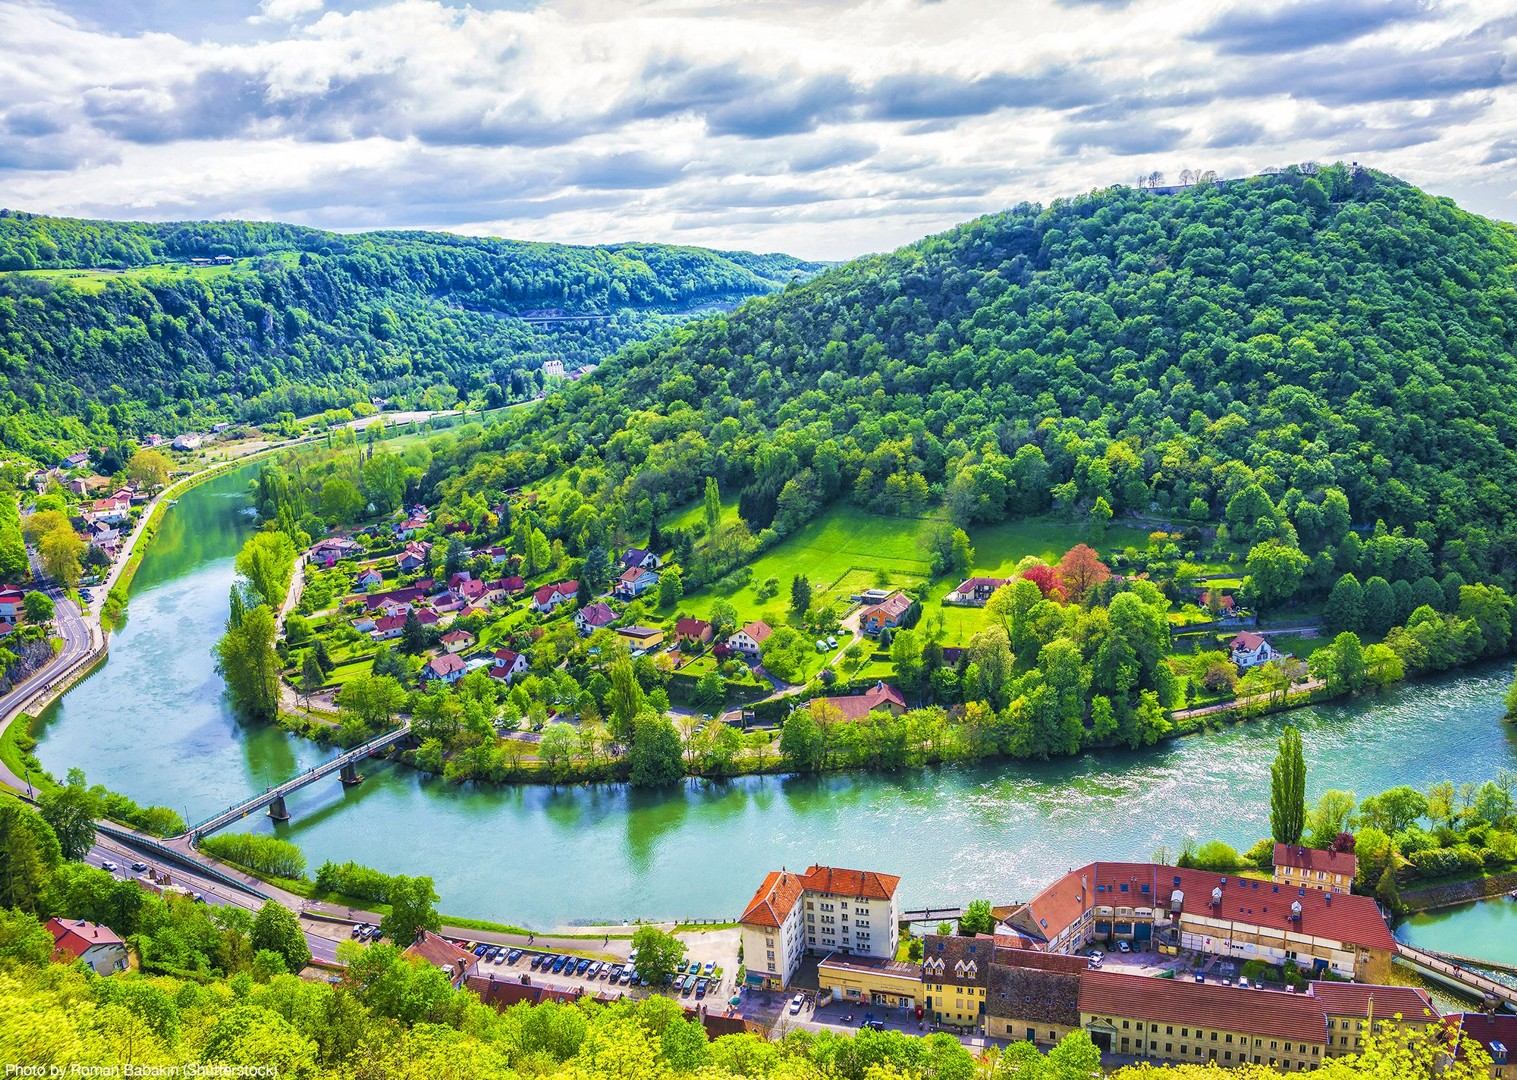 bourgogne-franche-comté-nature-france-burgundy-cycling-tour-beautiful.jpg - France - Burgundy - Caves and Canals - Self-Guided Leisure Cycling Holiday - Leisure Cycling